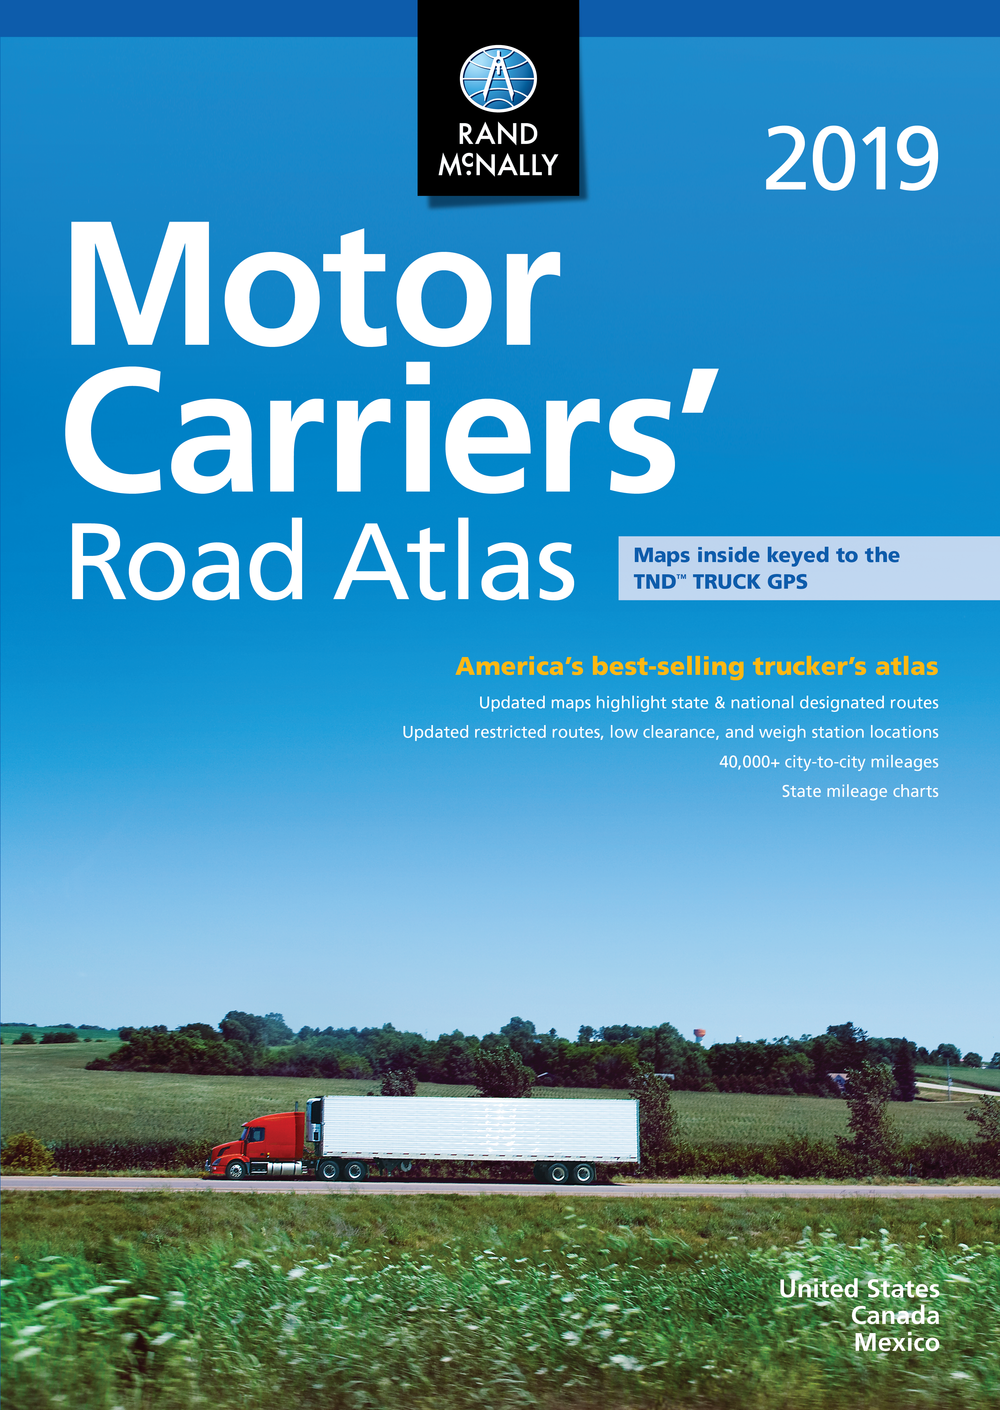 Rand Mcnally Motor Carriers Road Atlas